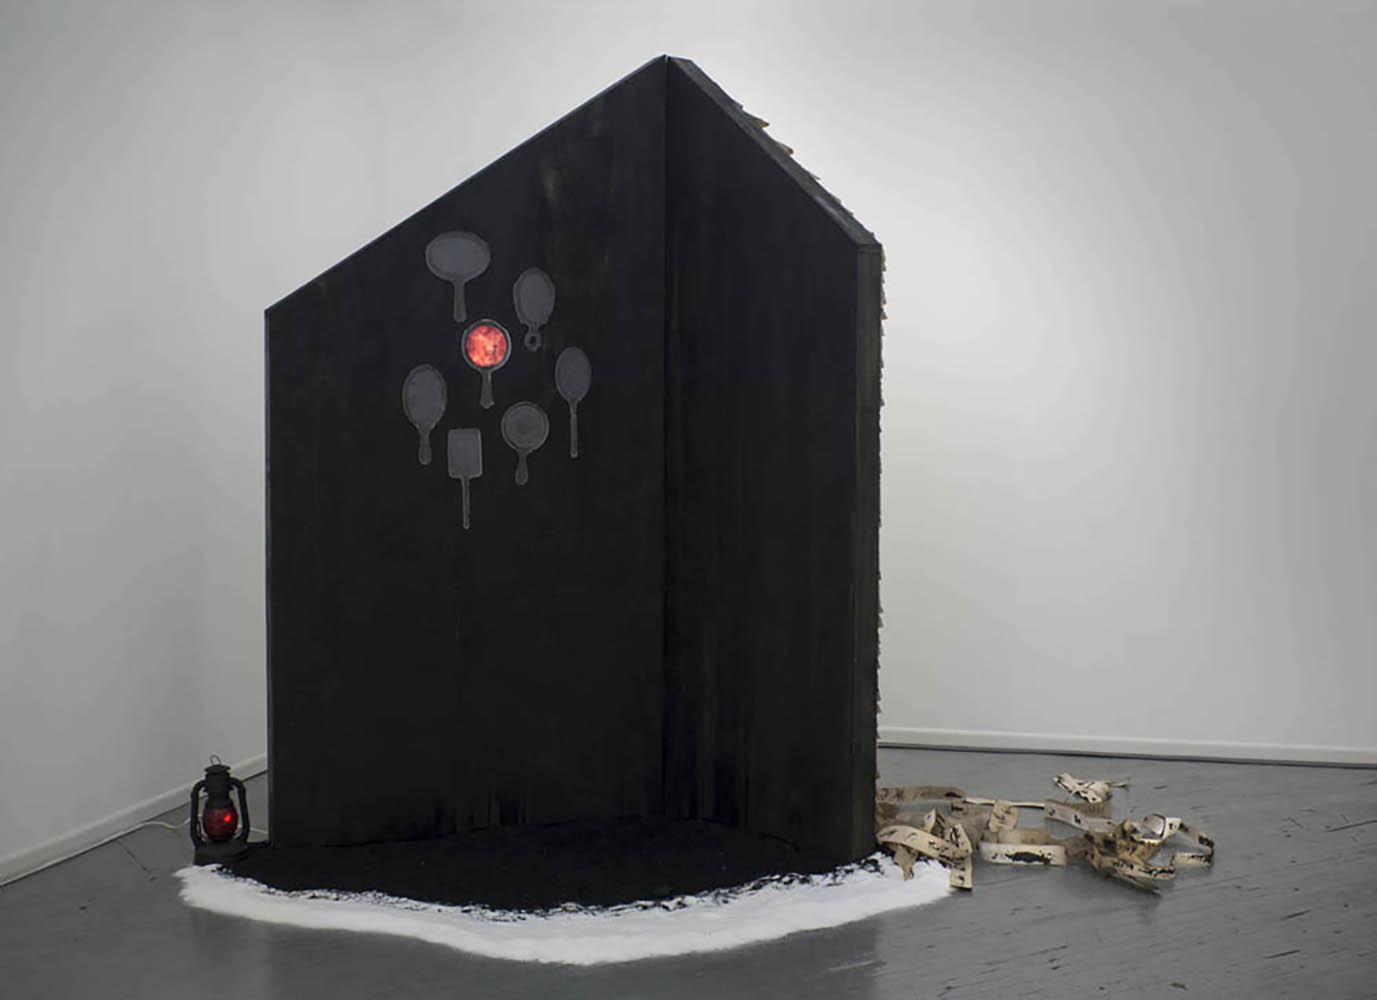 You Can't Go Home Again.  2014, Kiln cast glass, video, mixed media, 8' x 6' x 3'